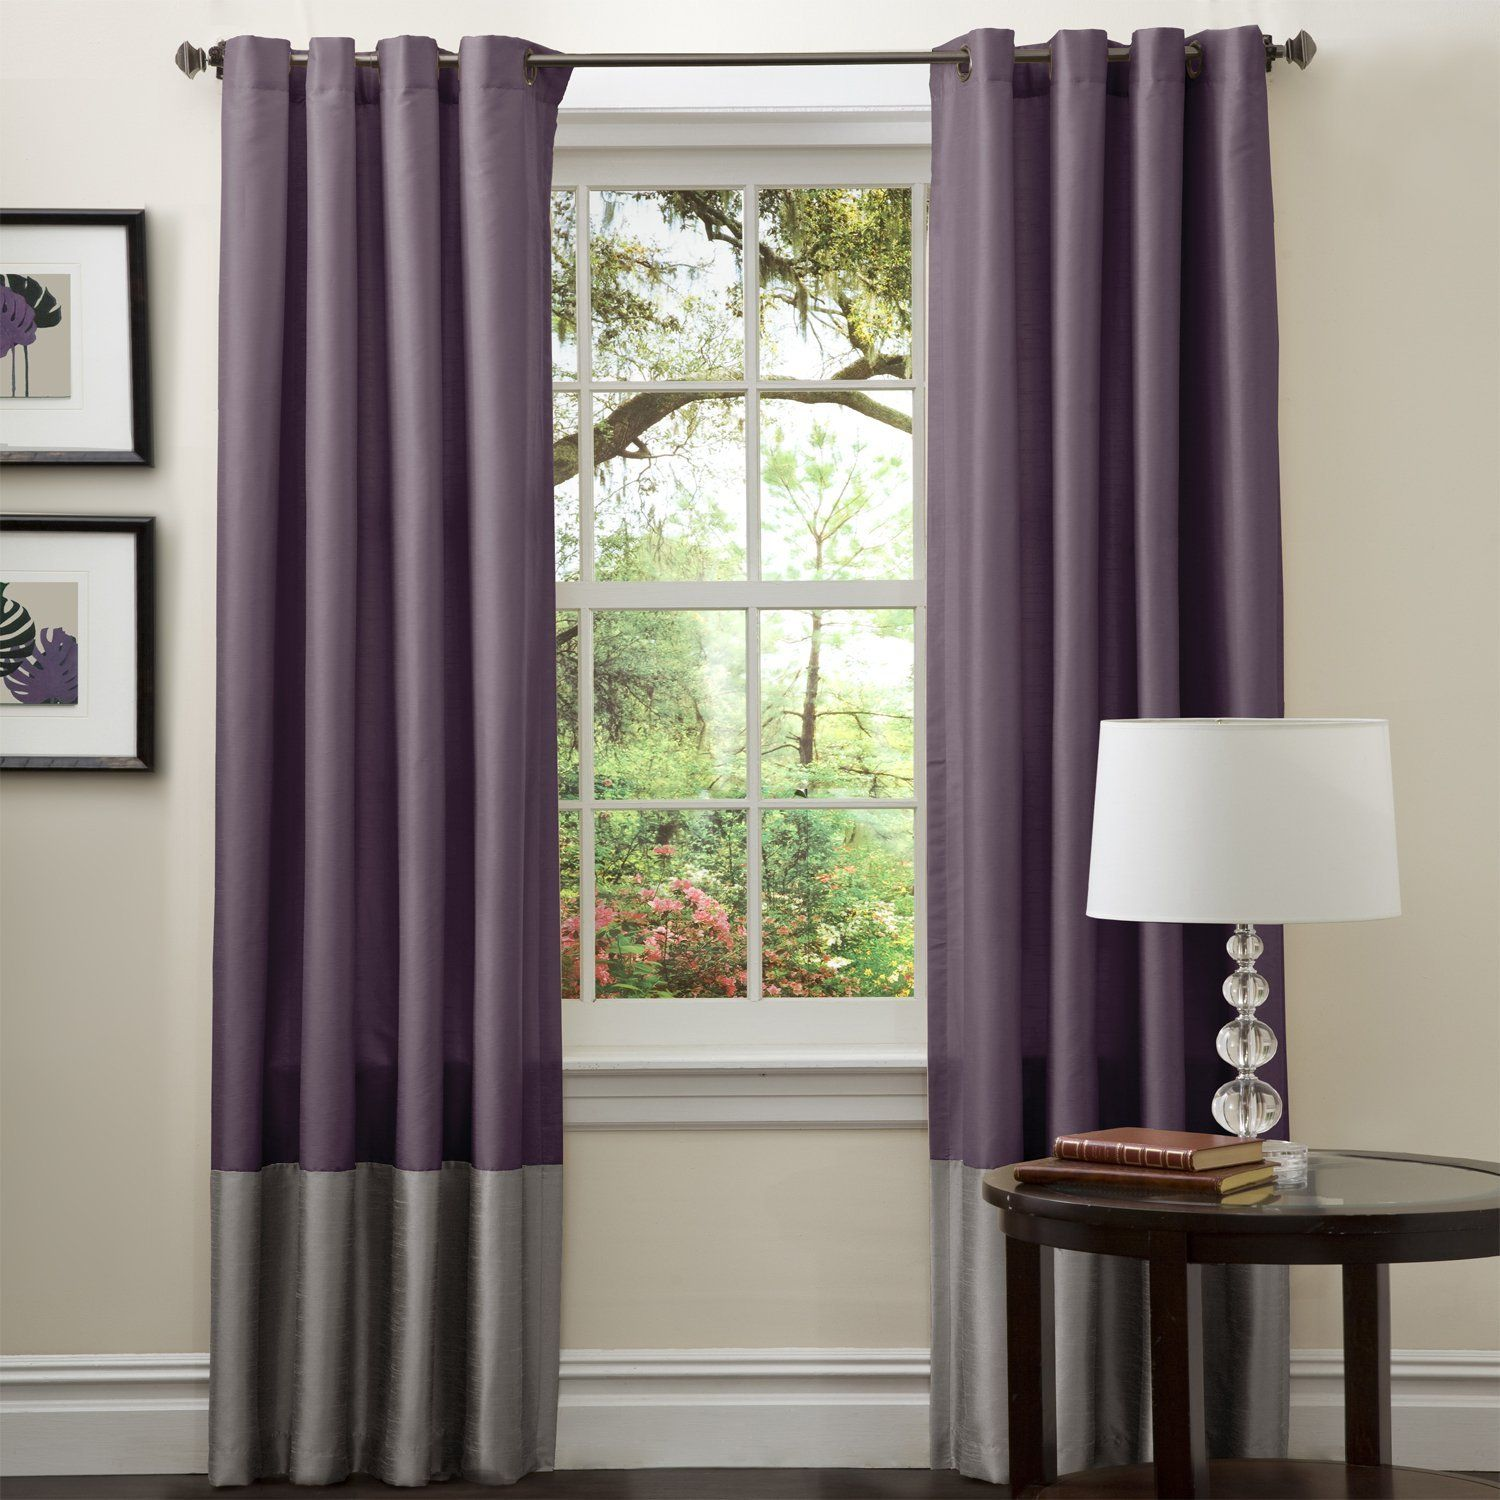 Dark brown curtains for bedroom - The Fantastic Warm Shades In Plum Curtains Http Draperyroomideas Com